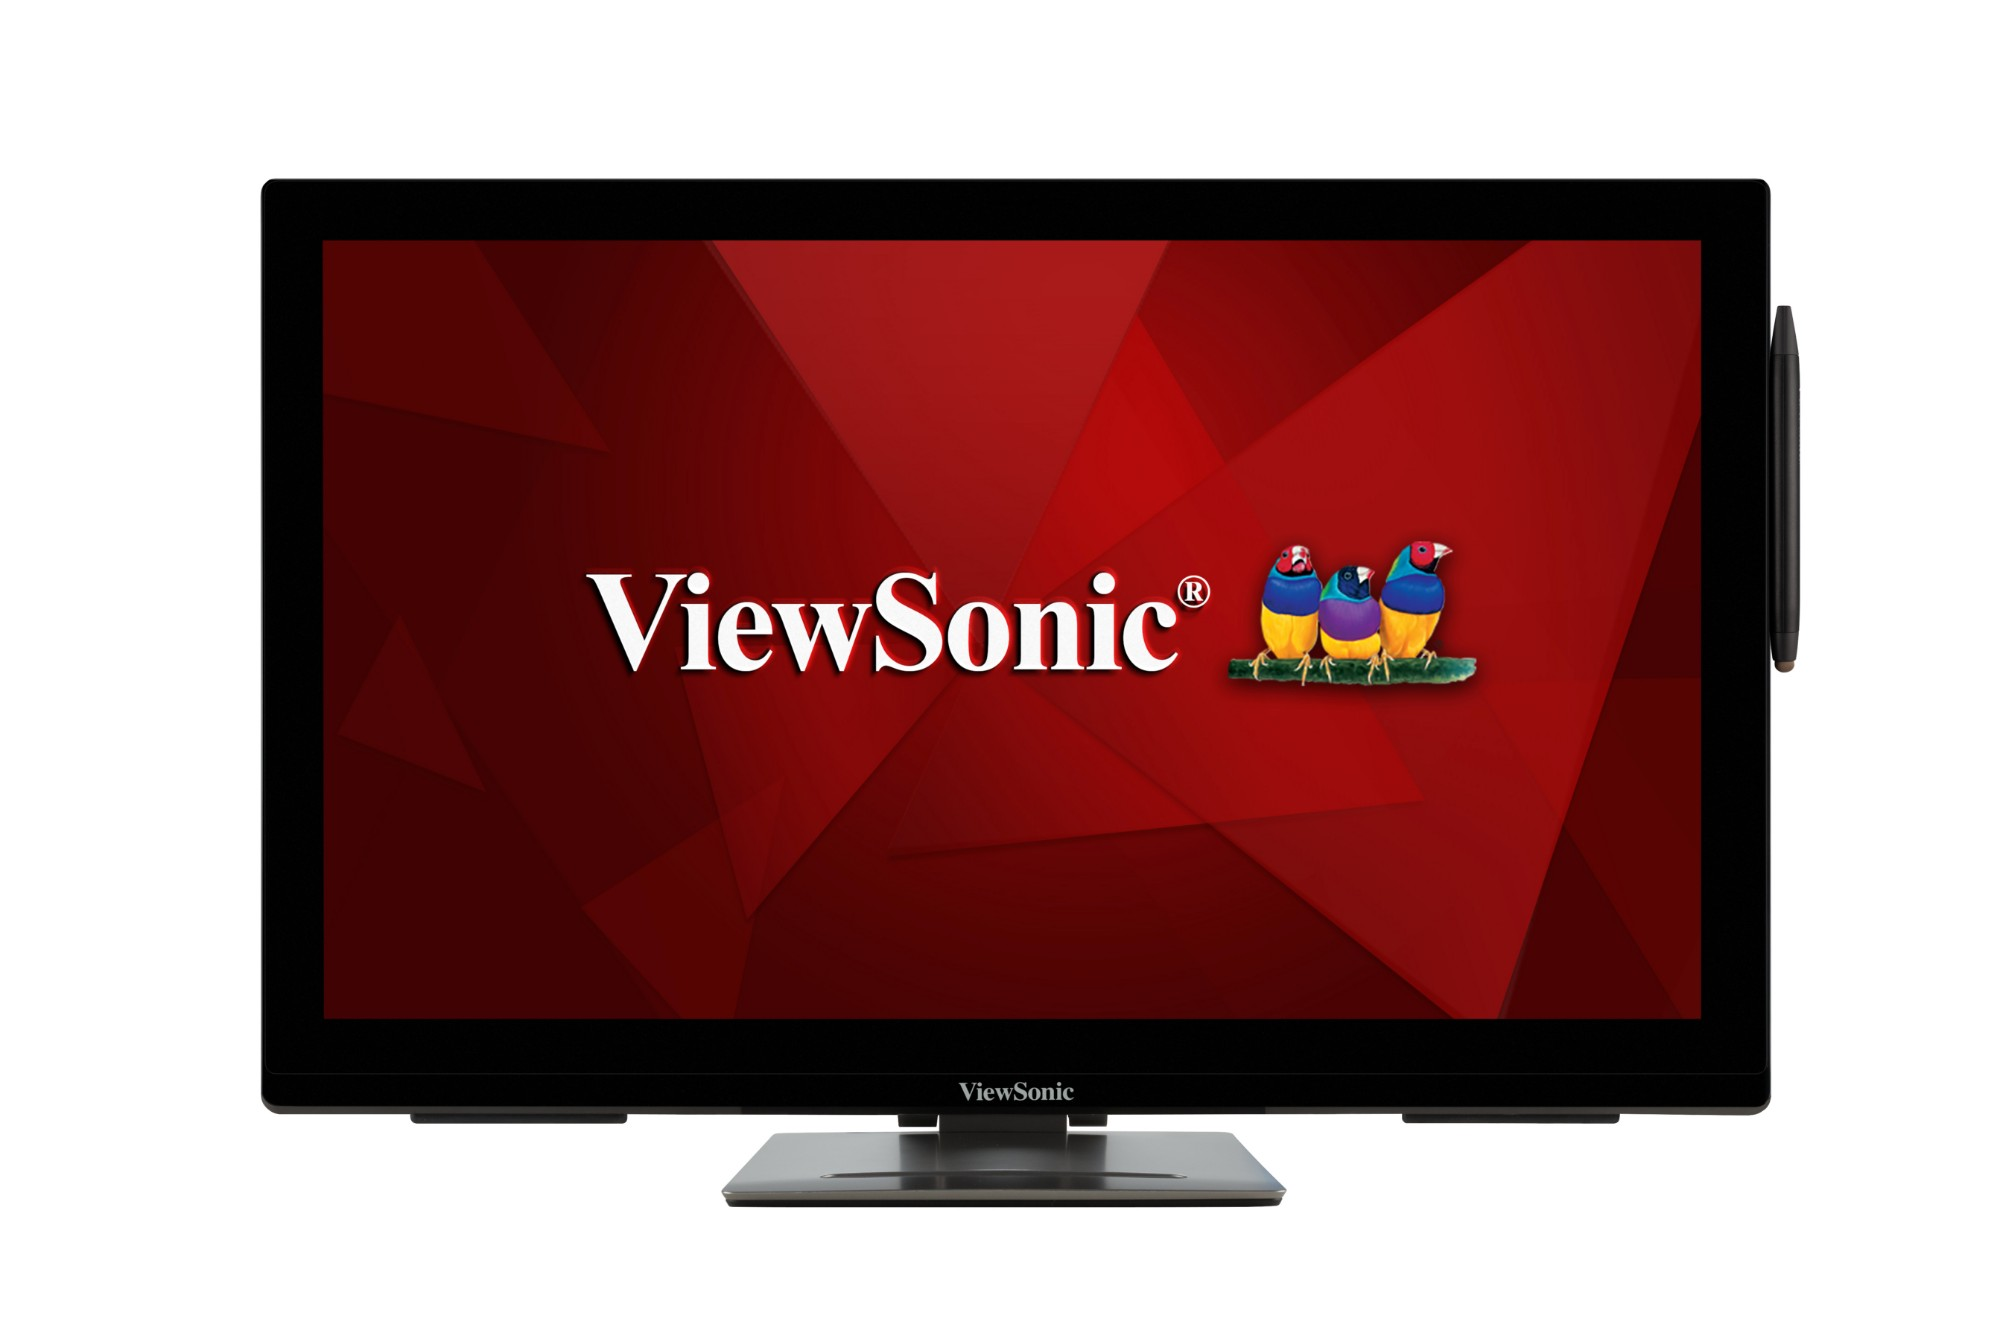 Viewsonic IFP2710 touch screen monitor 68 6 cm (27